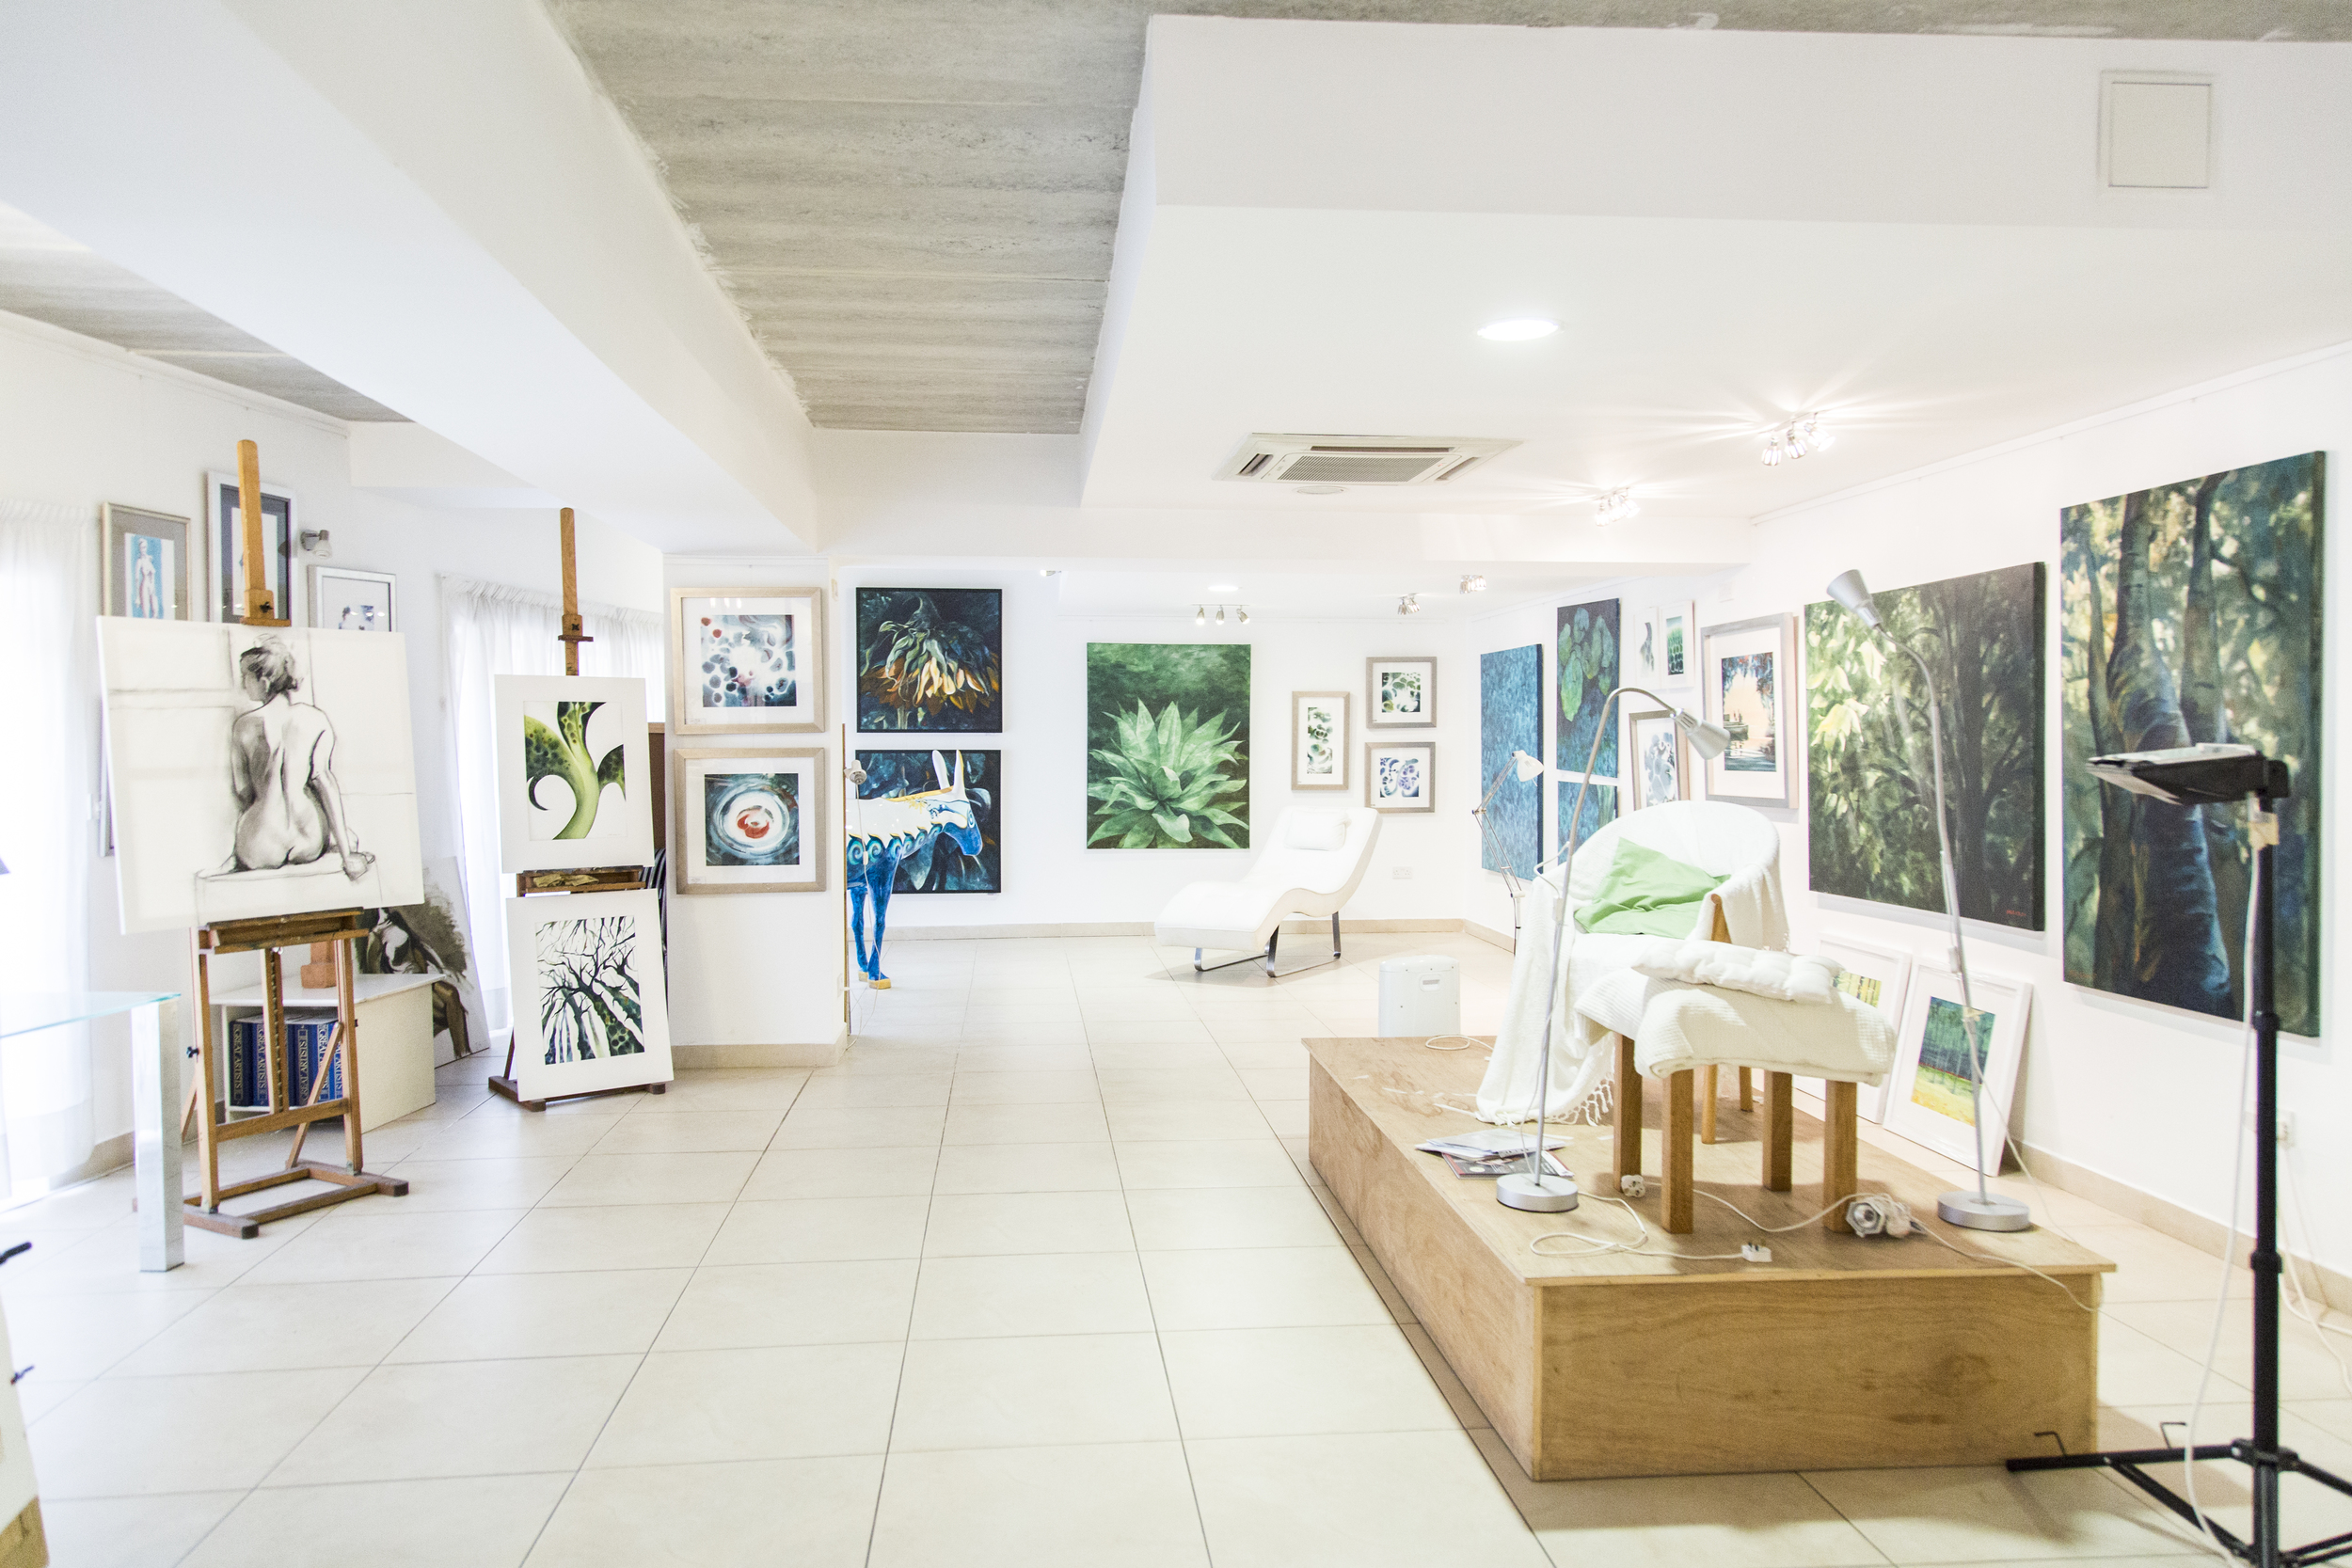 anna galea ART STUDIO & GALLERY in Marsaskala